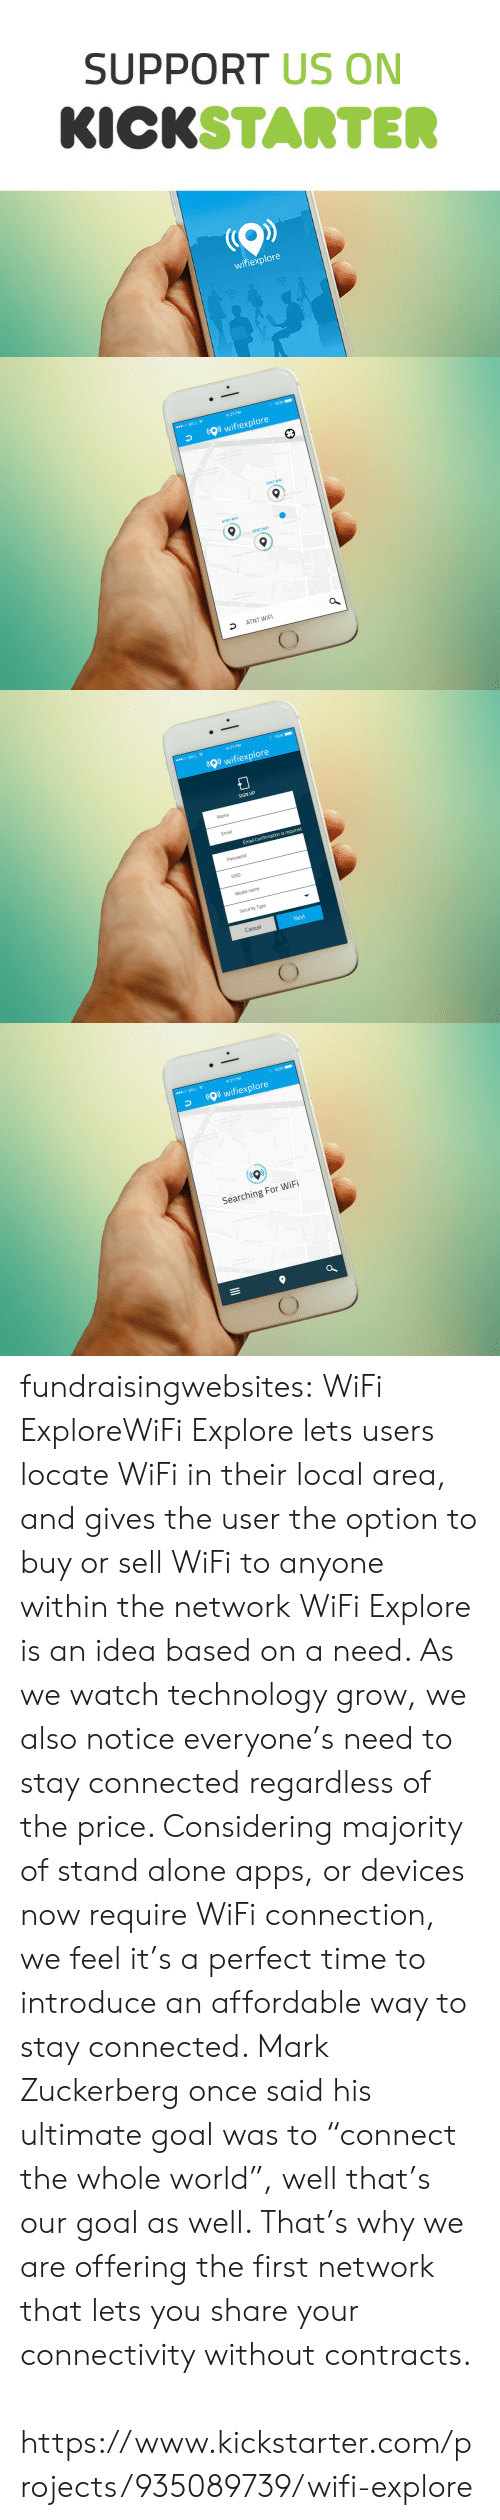 """Once Said: SUPPORT US ON  KICKSTARTE  wifiexplore   4:21 PM  00 BELL令  wifiexplore  ATNT WIF  ATNT WIF  ATNT WIFI  an Vilag  Ave  50  ATNT WIFI   00 BELL令  4:21 PM  wifiexplore  SIGN UP  Name  Email  Email Confirmation is required  Password  SSID  Model name  Security Type  Cancel  Next   00 BELL令  4:21 PM  wifiexplore  Searching For WiFi fundraisingwebsites:  WiFi ExploreWiFi Explore lets users locate WiFi in their local area, and gives the user the option to buy or sell WiFi to anyone within the network  WiFi Explore is an idea based on a need. As we watch technology grow, we also notice everyone's need to stay connected regardless of the price. Considering majority of stand alone apps, or devices now require WiFi connection, we feel it's a perfect time to introduce an affordable way to stay connected. Mark Zuckerberg once said his ultimate goal was to """"connect the whole world"""", well that's our goal as well. That's why we are offering the first network that lets you share your connectivity without contracts.   https://www.kickstarter.com/projects/935089739/wifi-explore"""